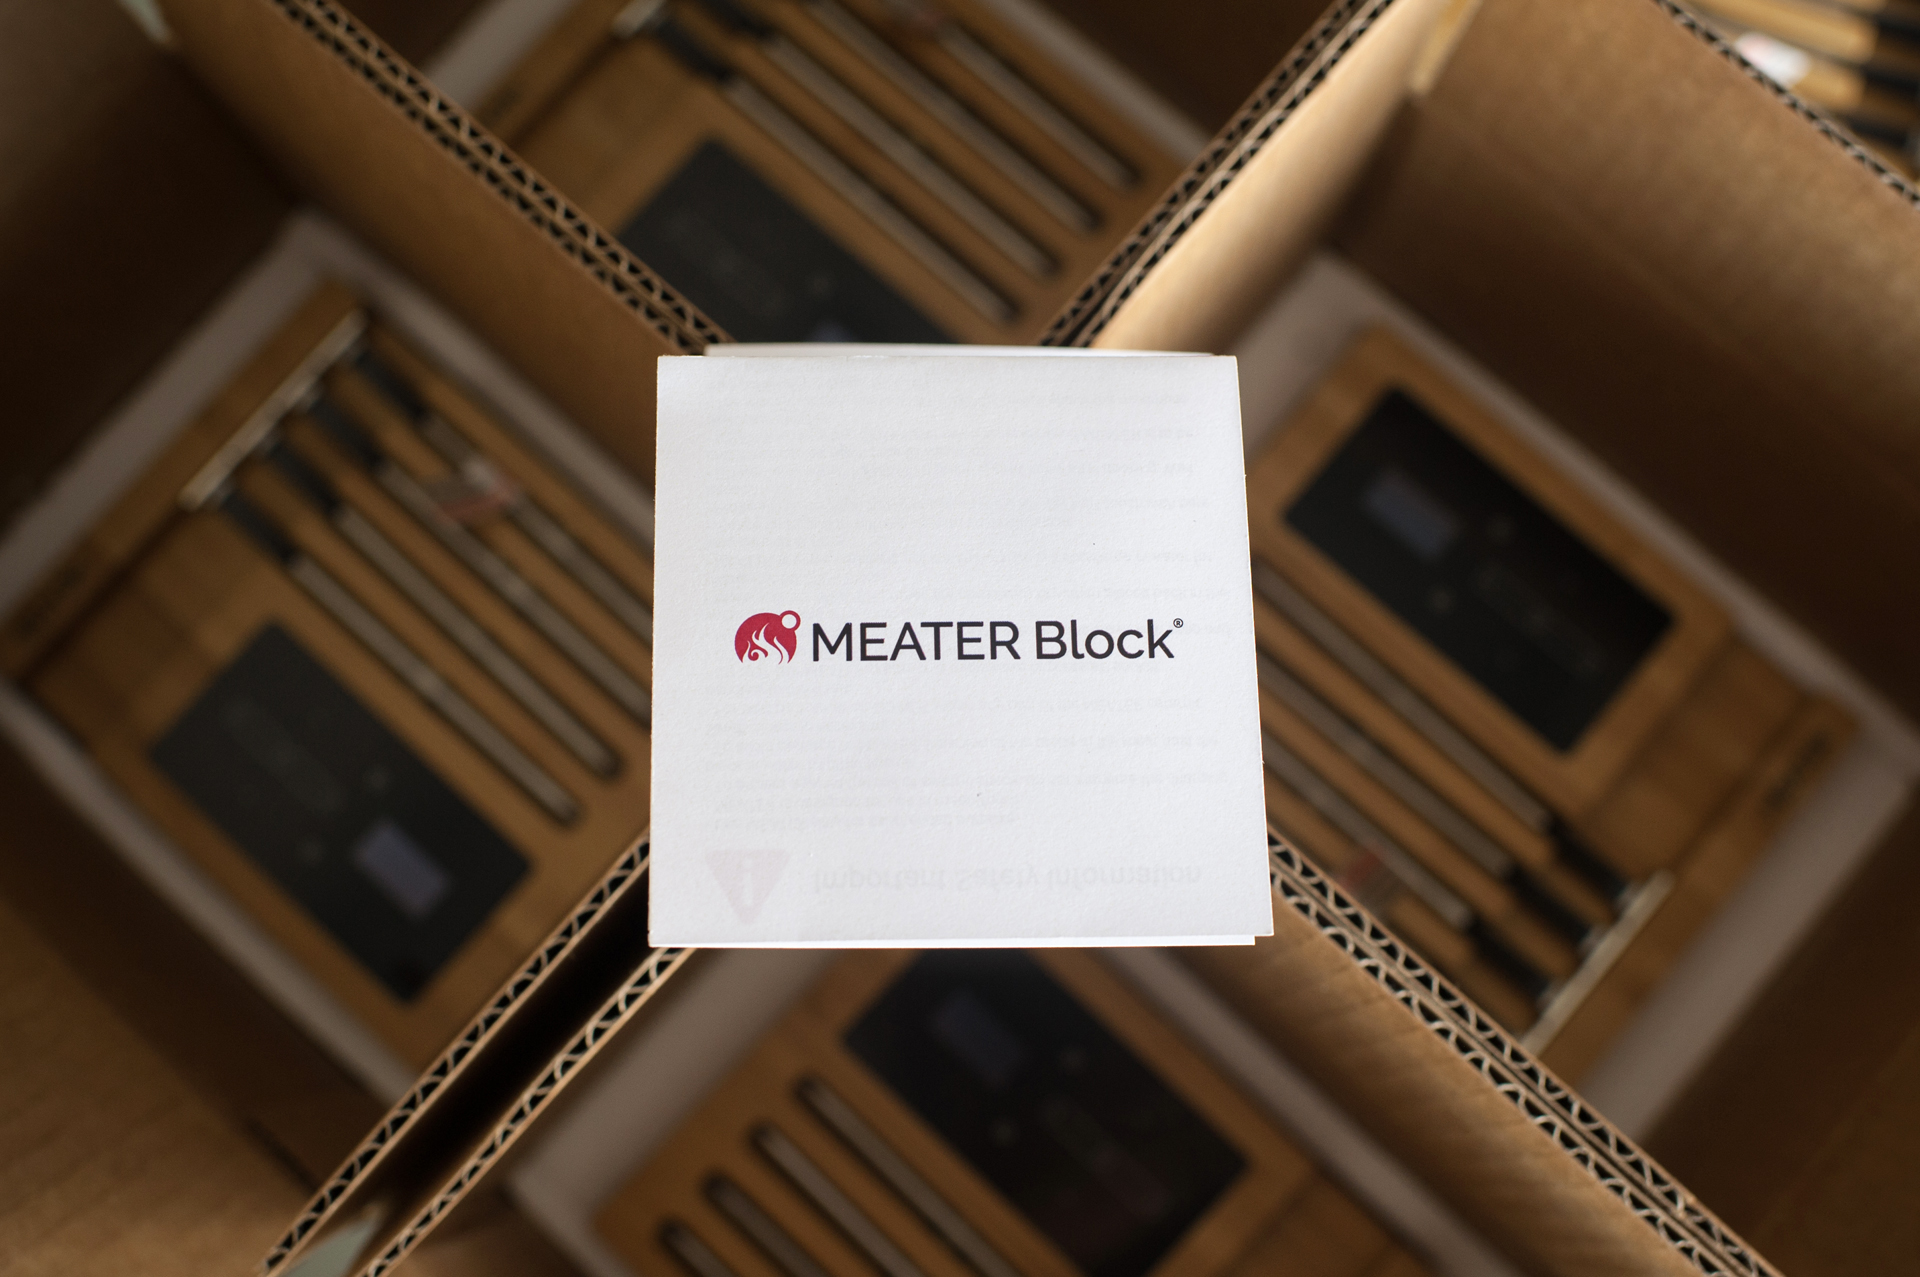 meater block shipments